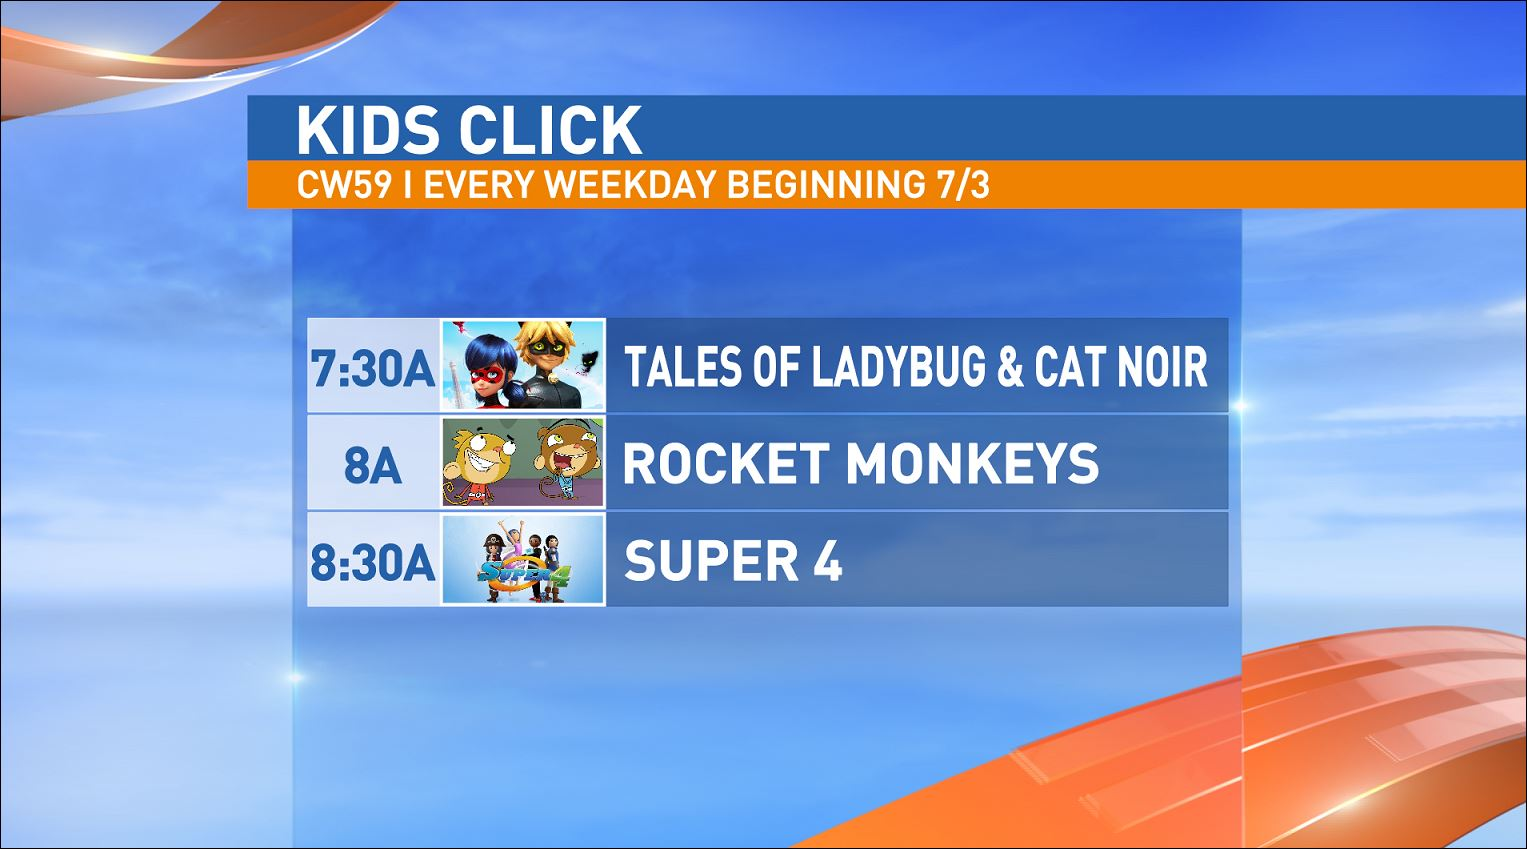 7:30 a.m. Tales of Ladybug & Cat Noir / 8:00 a.m. Rocket Monkeys / 8:30 a.m. Super 4